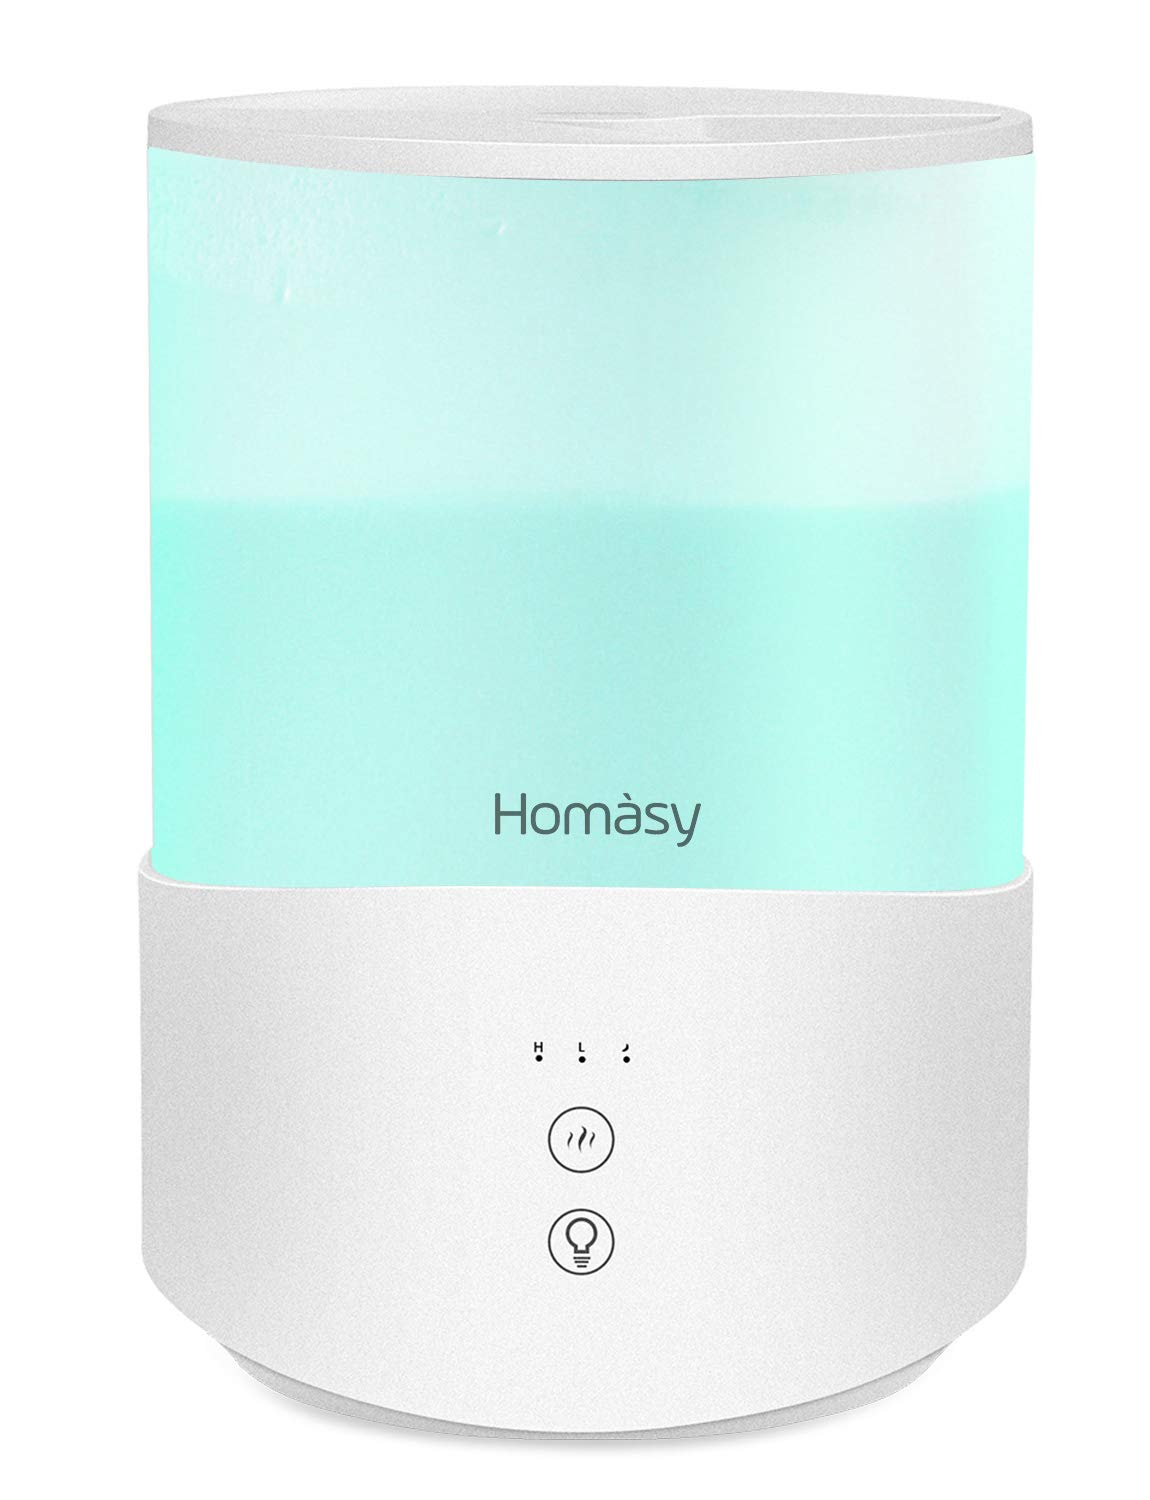 Homasy Cool Mist Humidifier Diffuser, 2.5L Essential Oil Diffuser with 7-Color Mood Lights, Top Fill Humidifier for Bedroom, Baby Humidifier with Adjustable Mist Output, Sleep Mode, Auto Shut Off by Homasy